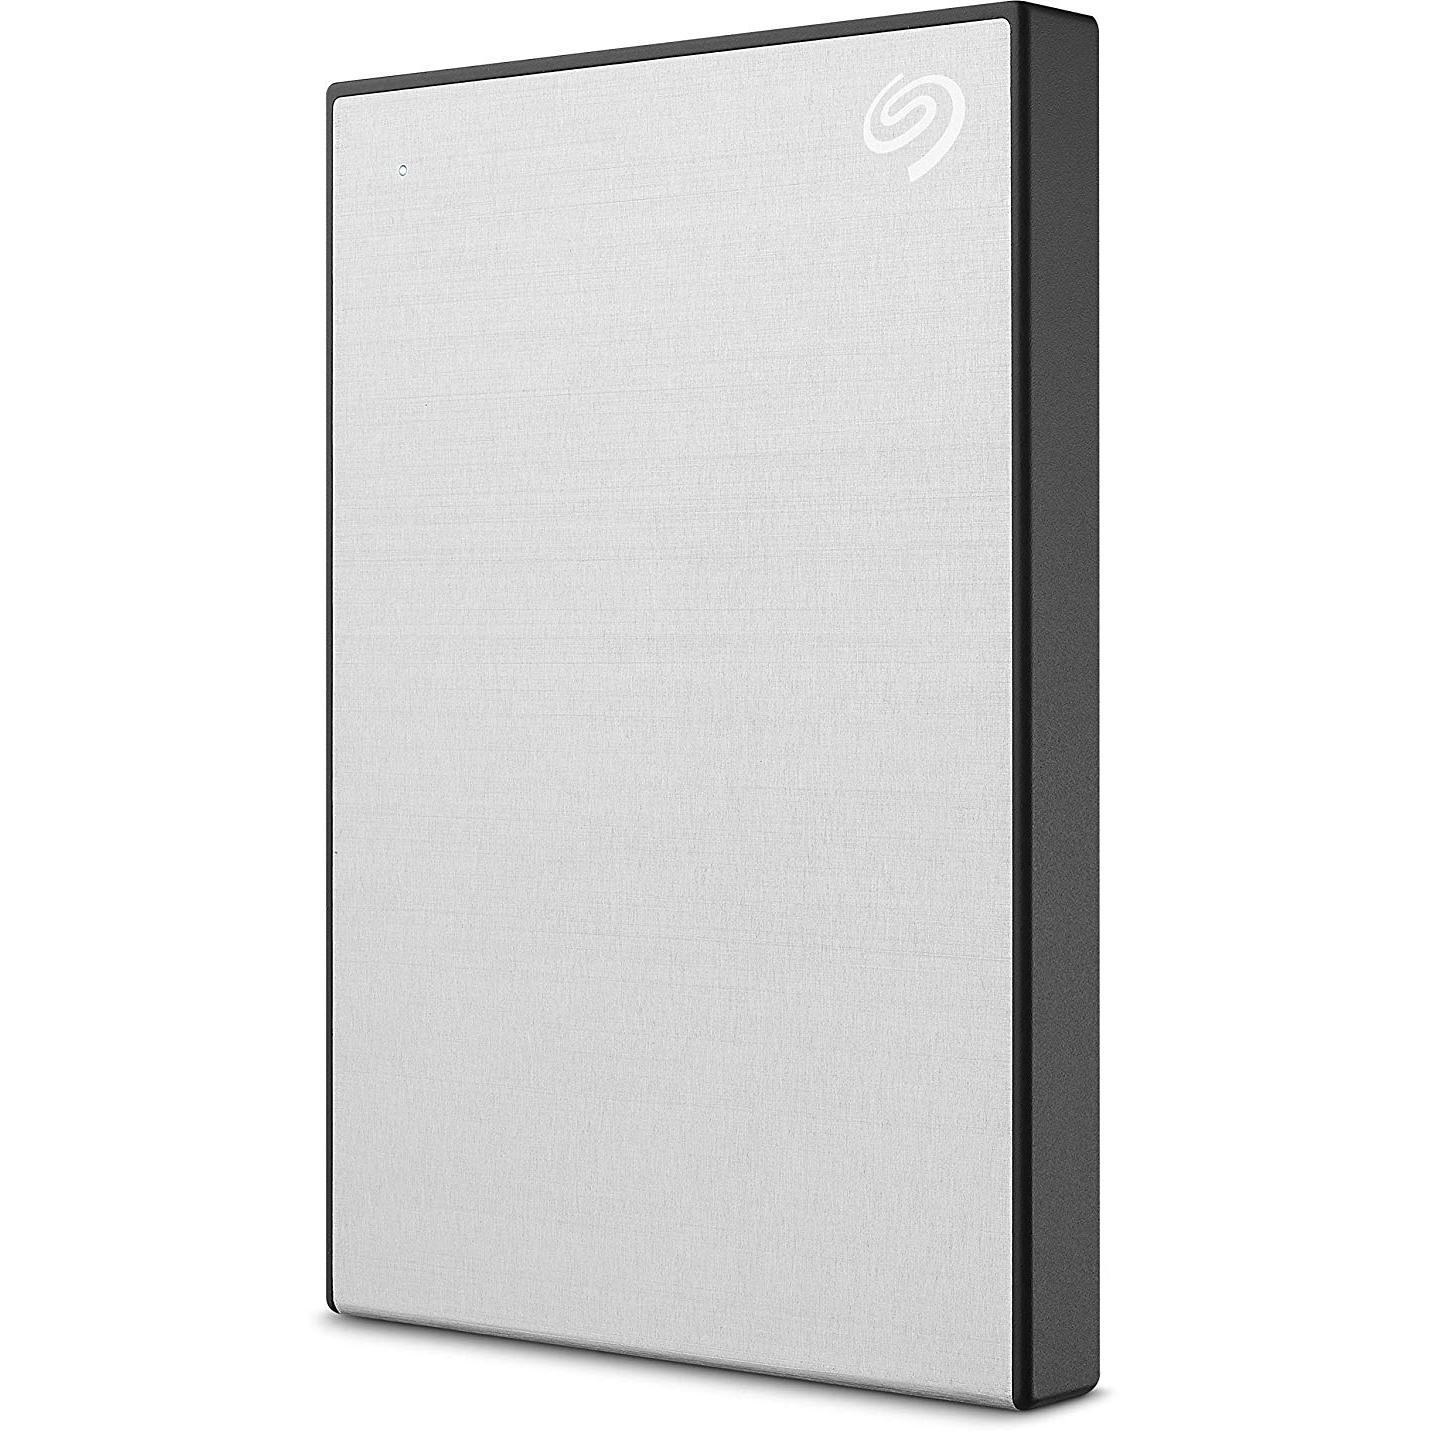 Original Seagate Backup Plus Slim 2TB USB 3.0 External Hard Drive (STHN2000401)